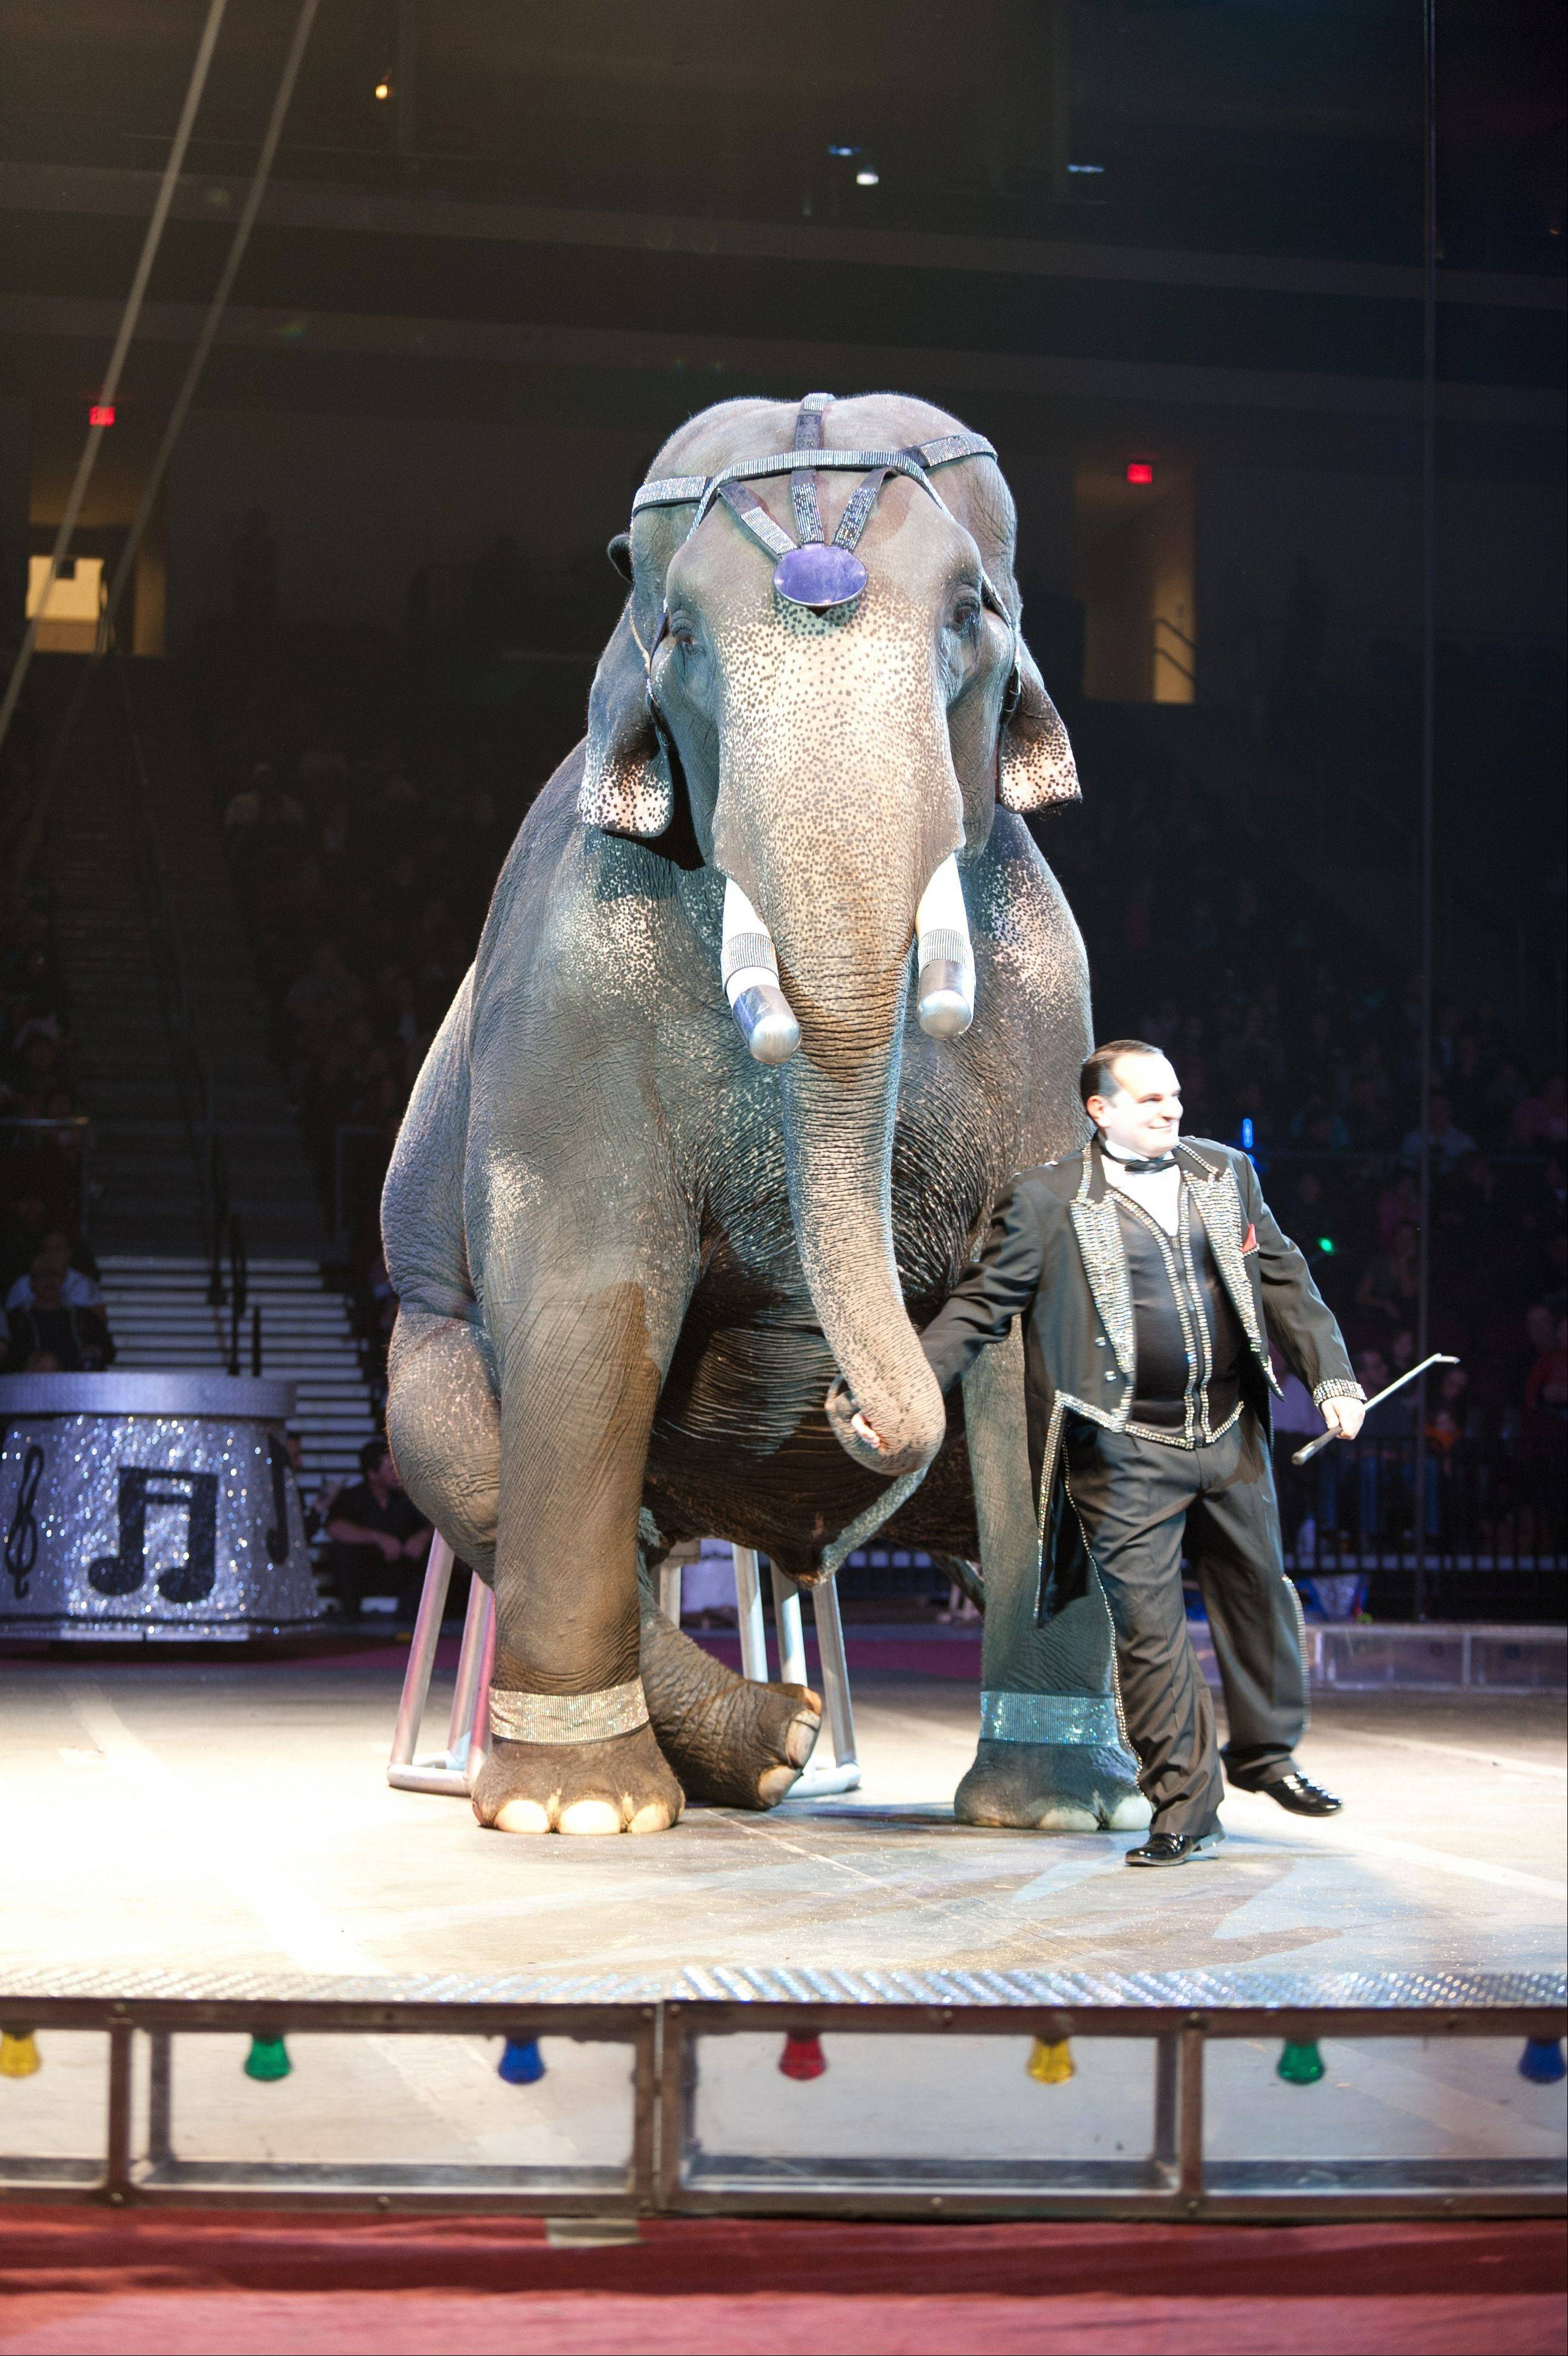 Animal performers will be featured at the �Circus Spectacular� show, coming to the Sears Centre Arena in Hoffman Estates, Friday, Feb. 21, through Sunday, Feb. 23.